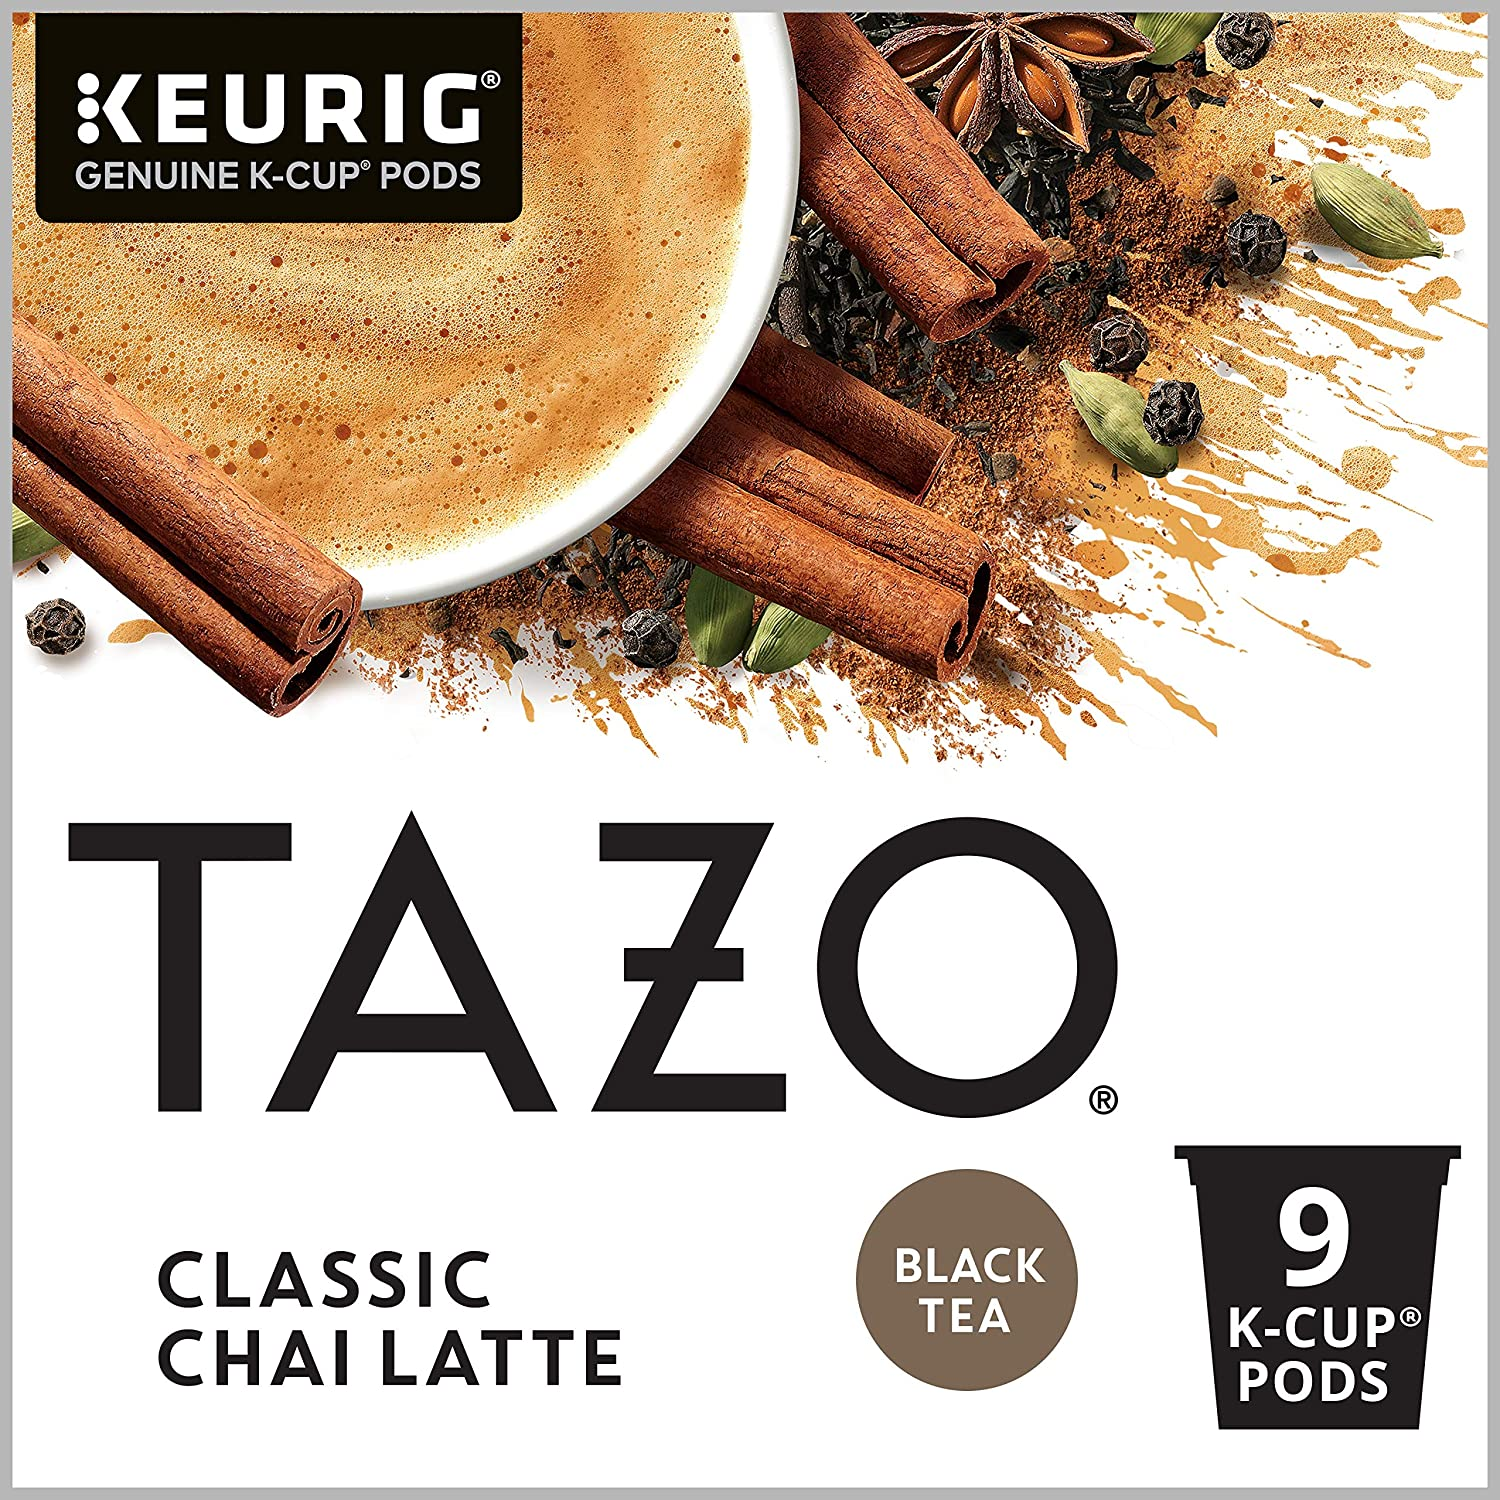 Tazo Chai Latte K-Cup Pods for a rich and bold smooth chai latte Black Tea with a touch of sweetness 9 Count